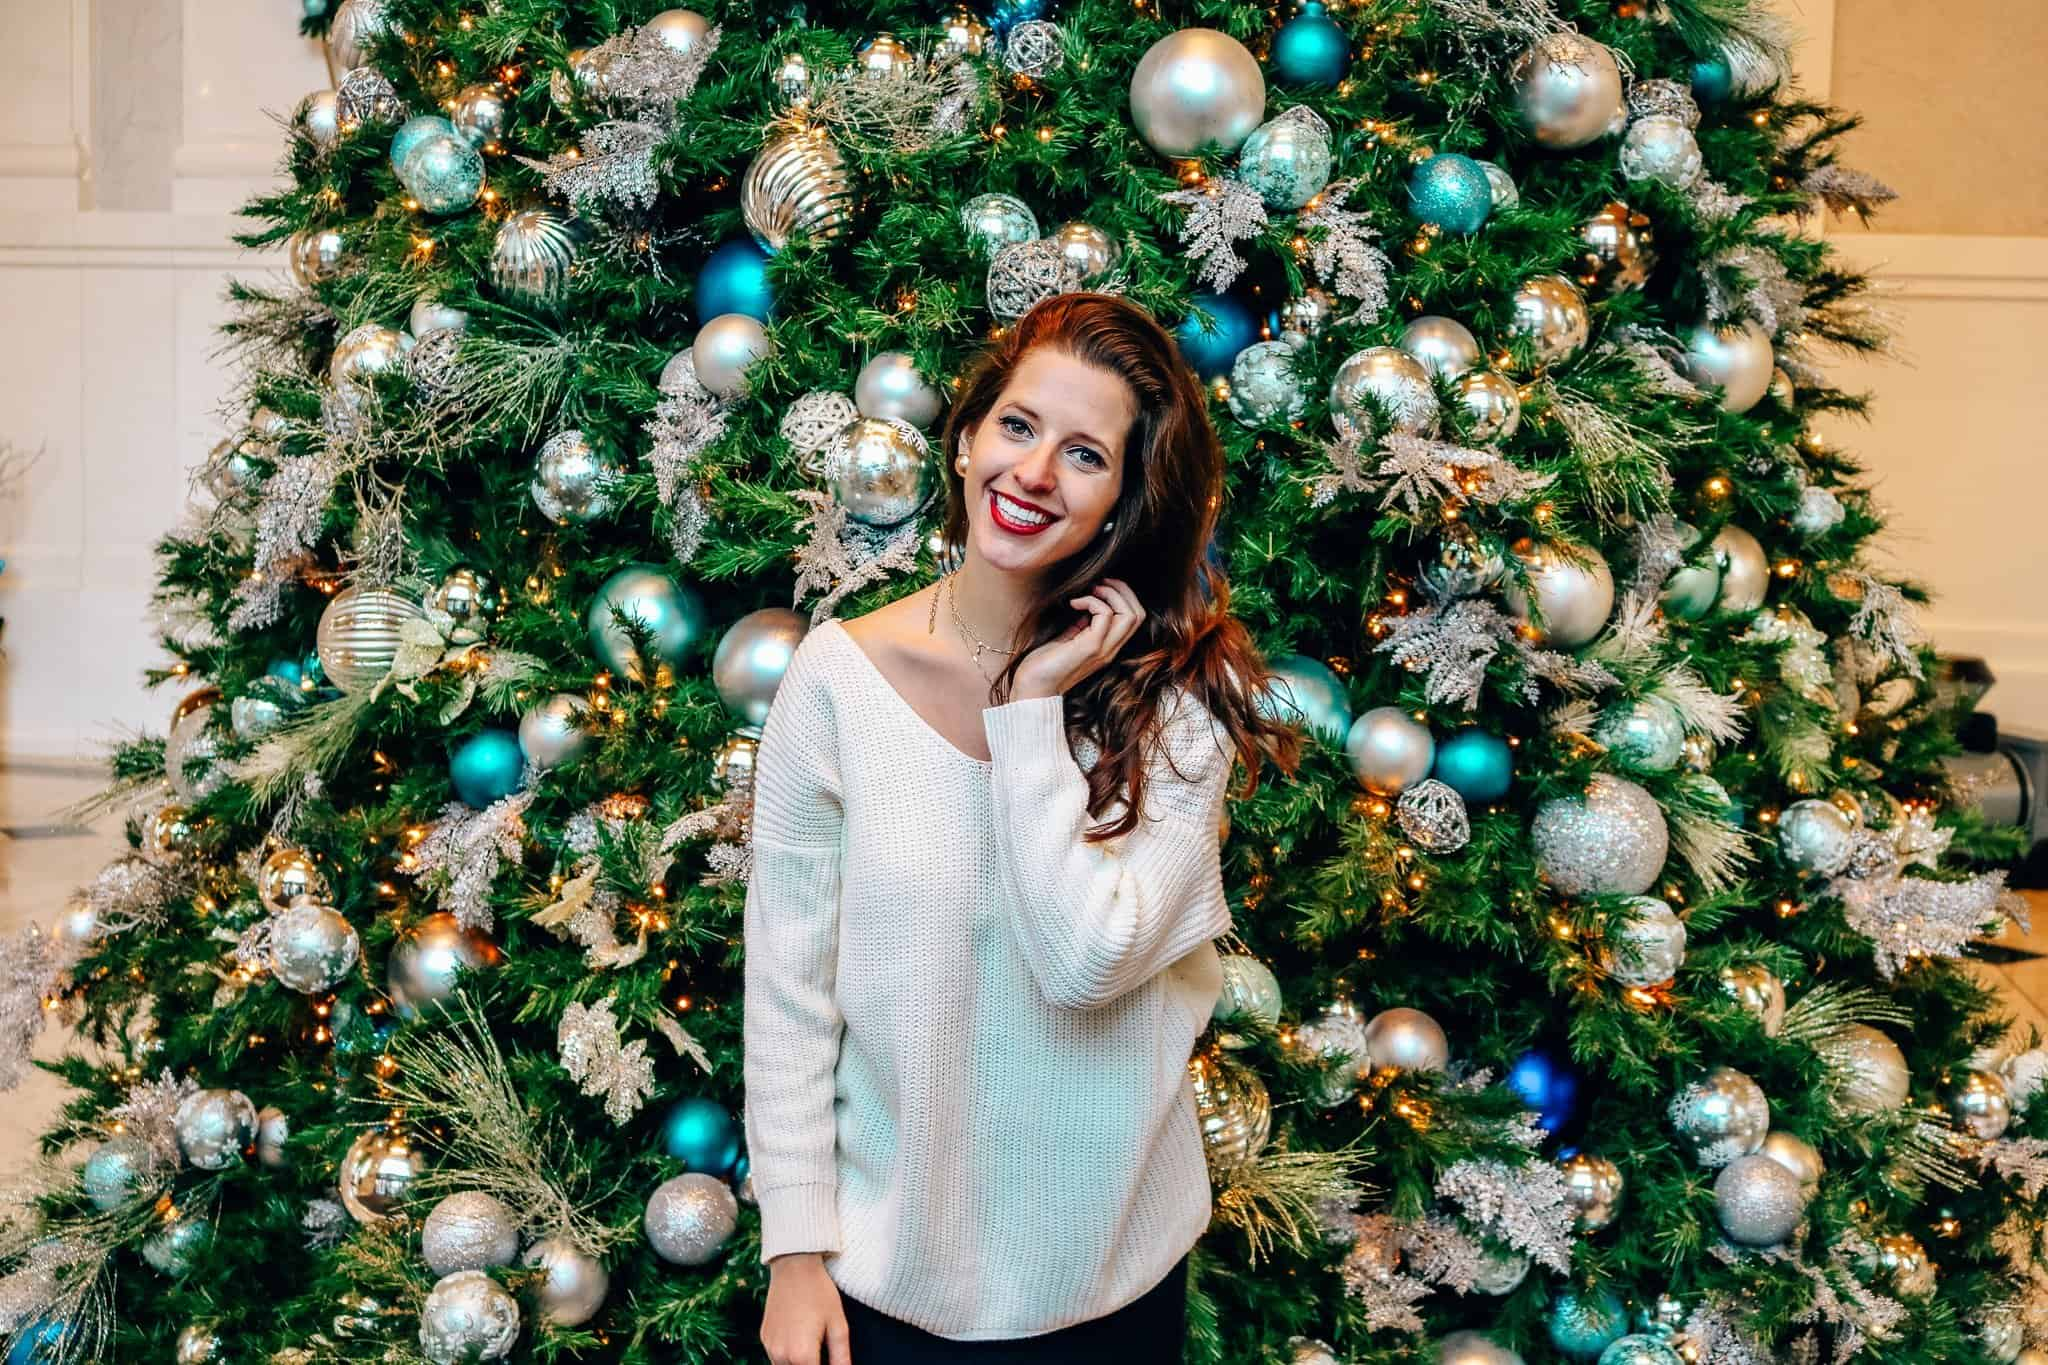 77 W Wacker Drive - Favourite Christmas Activities in Chicago with Chicwish